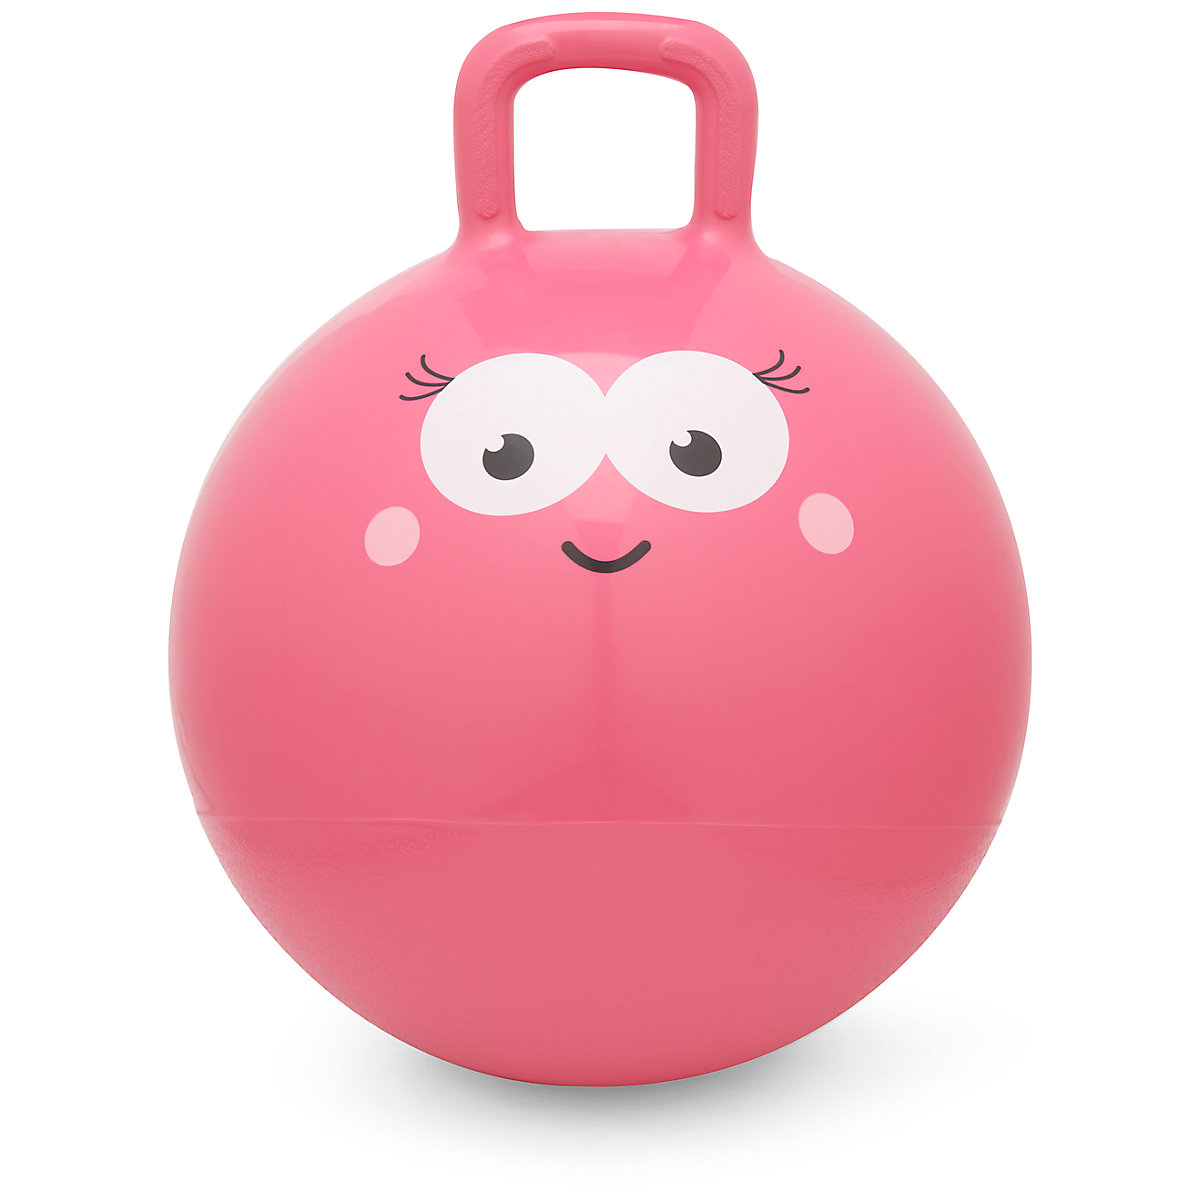 Sit n Bounce - Pink Toy From 3 years